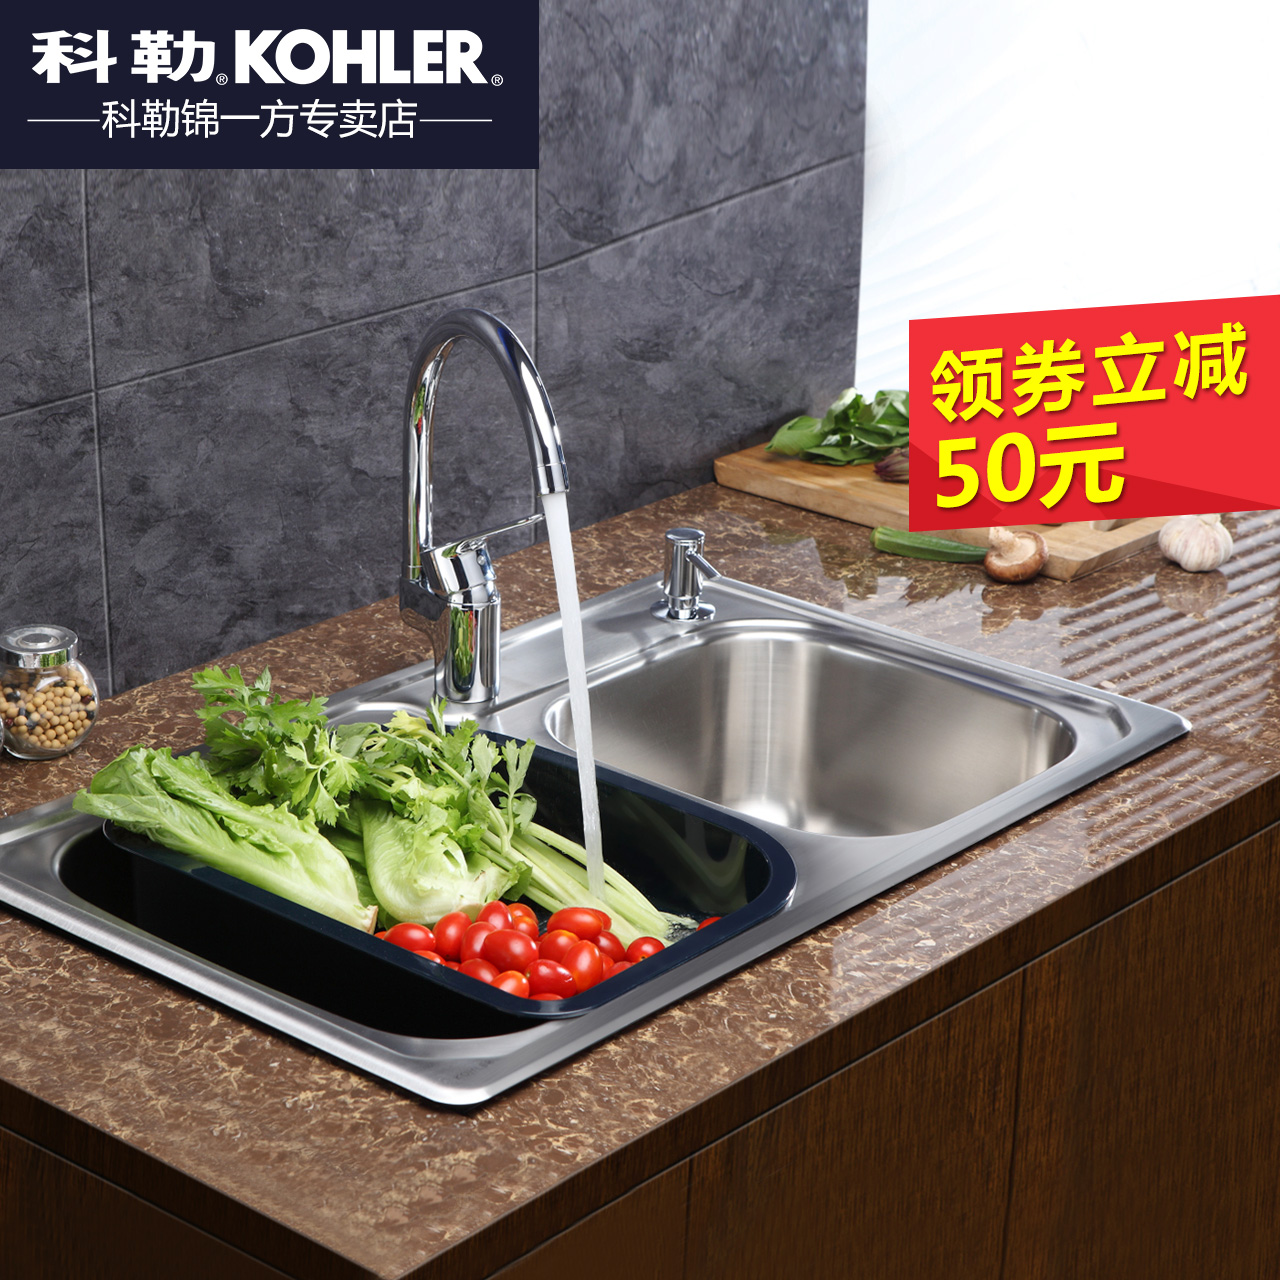 Köhler K-45924T dual slot vegetables basin kitchen sink dual slot 304 stainless steel sink package vegetables pool